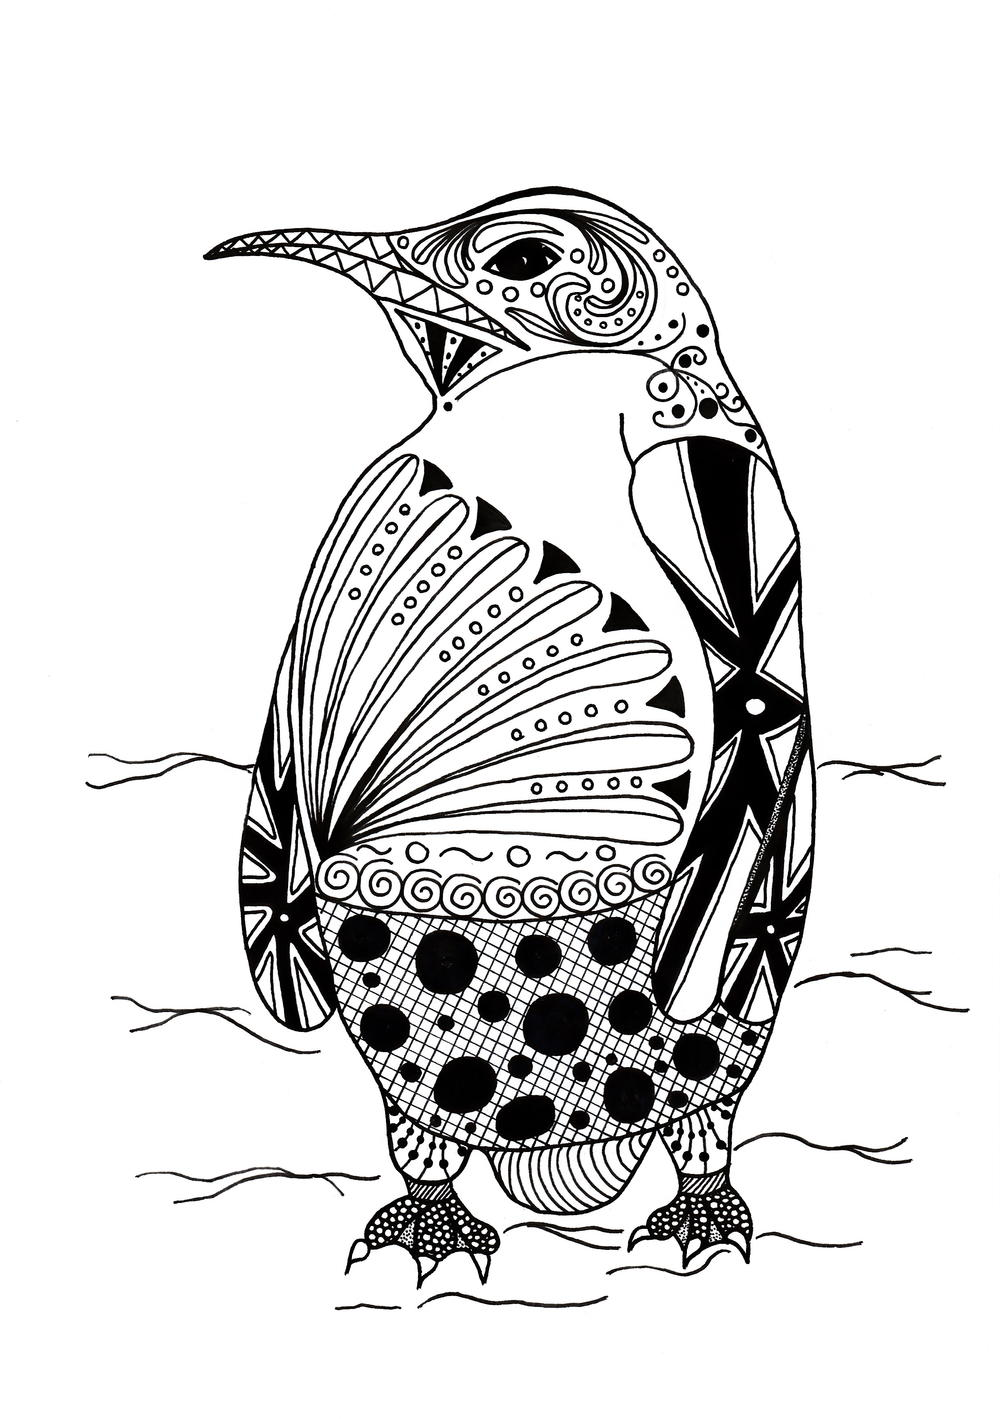 Intricate Penguin Adult Coloring Page | FaveCrafts.com | coloring pictures for adults animals